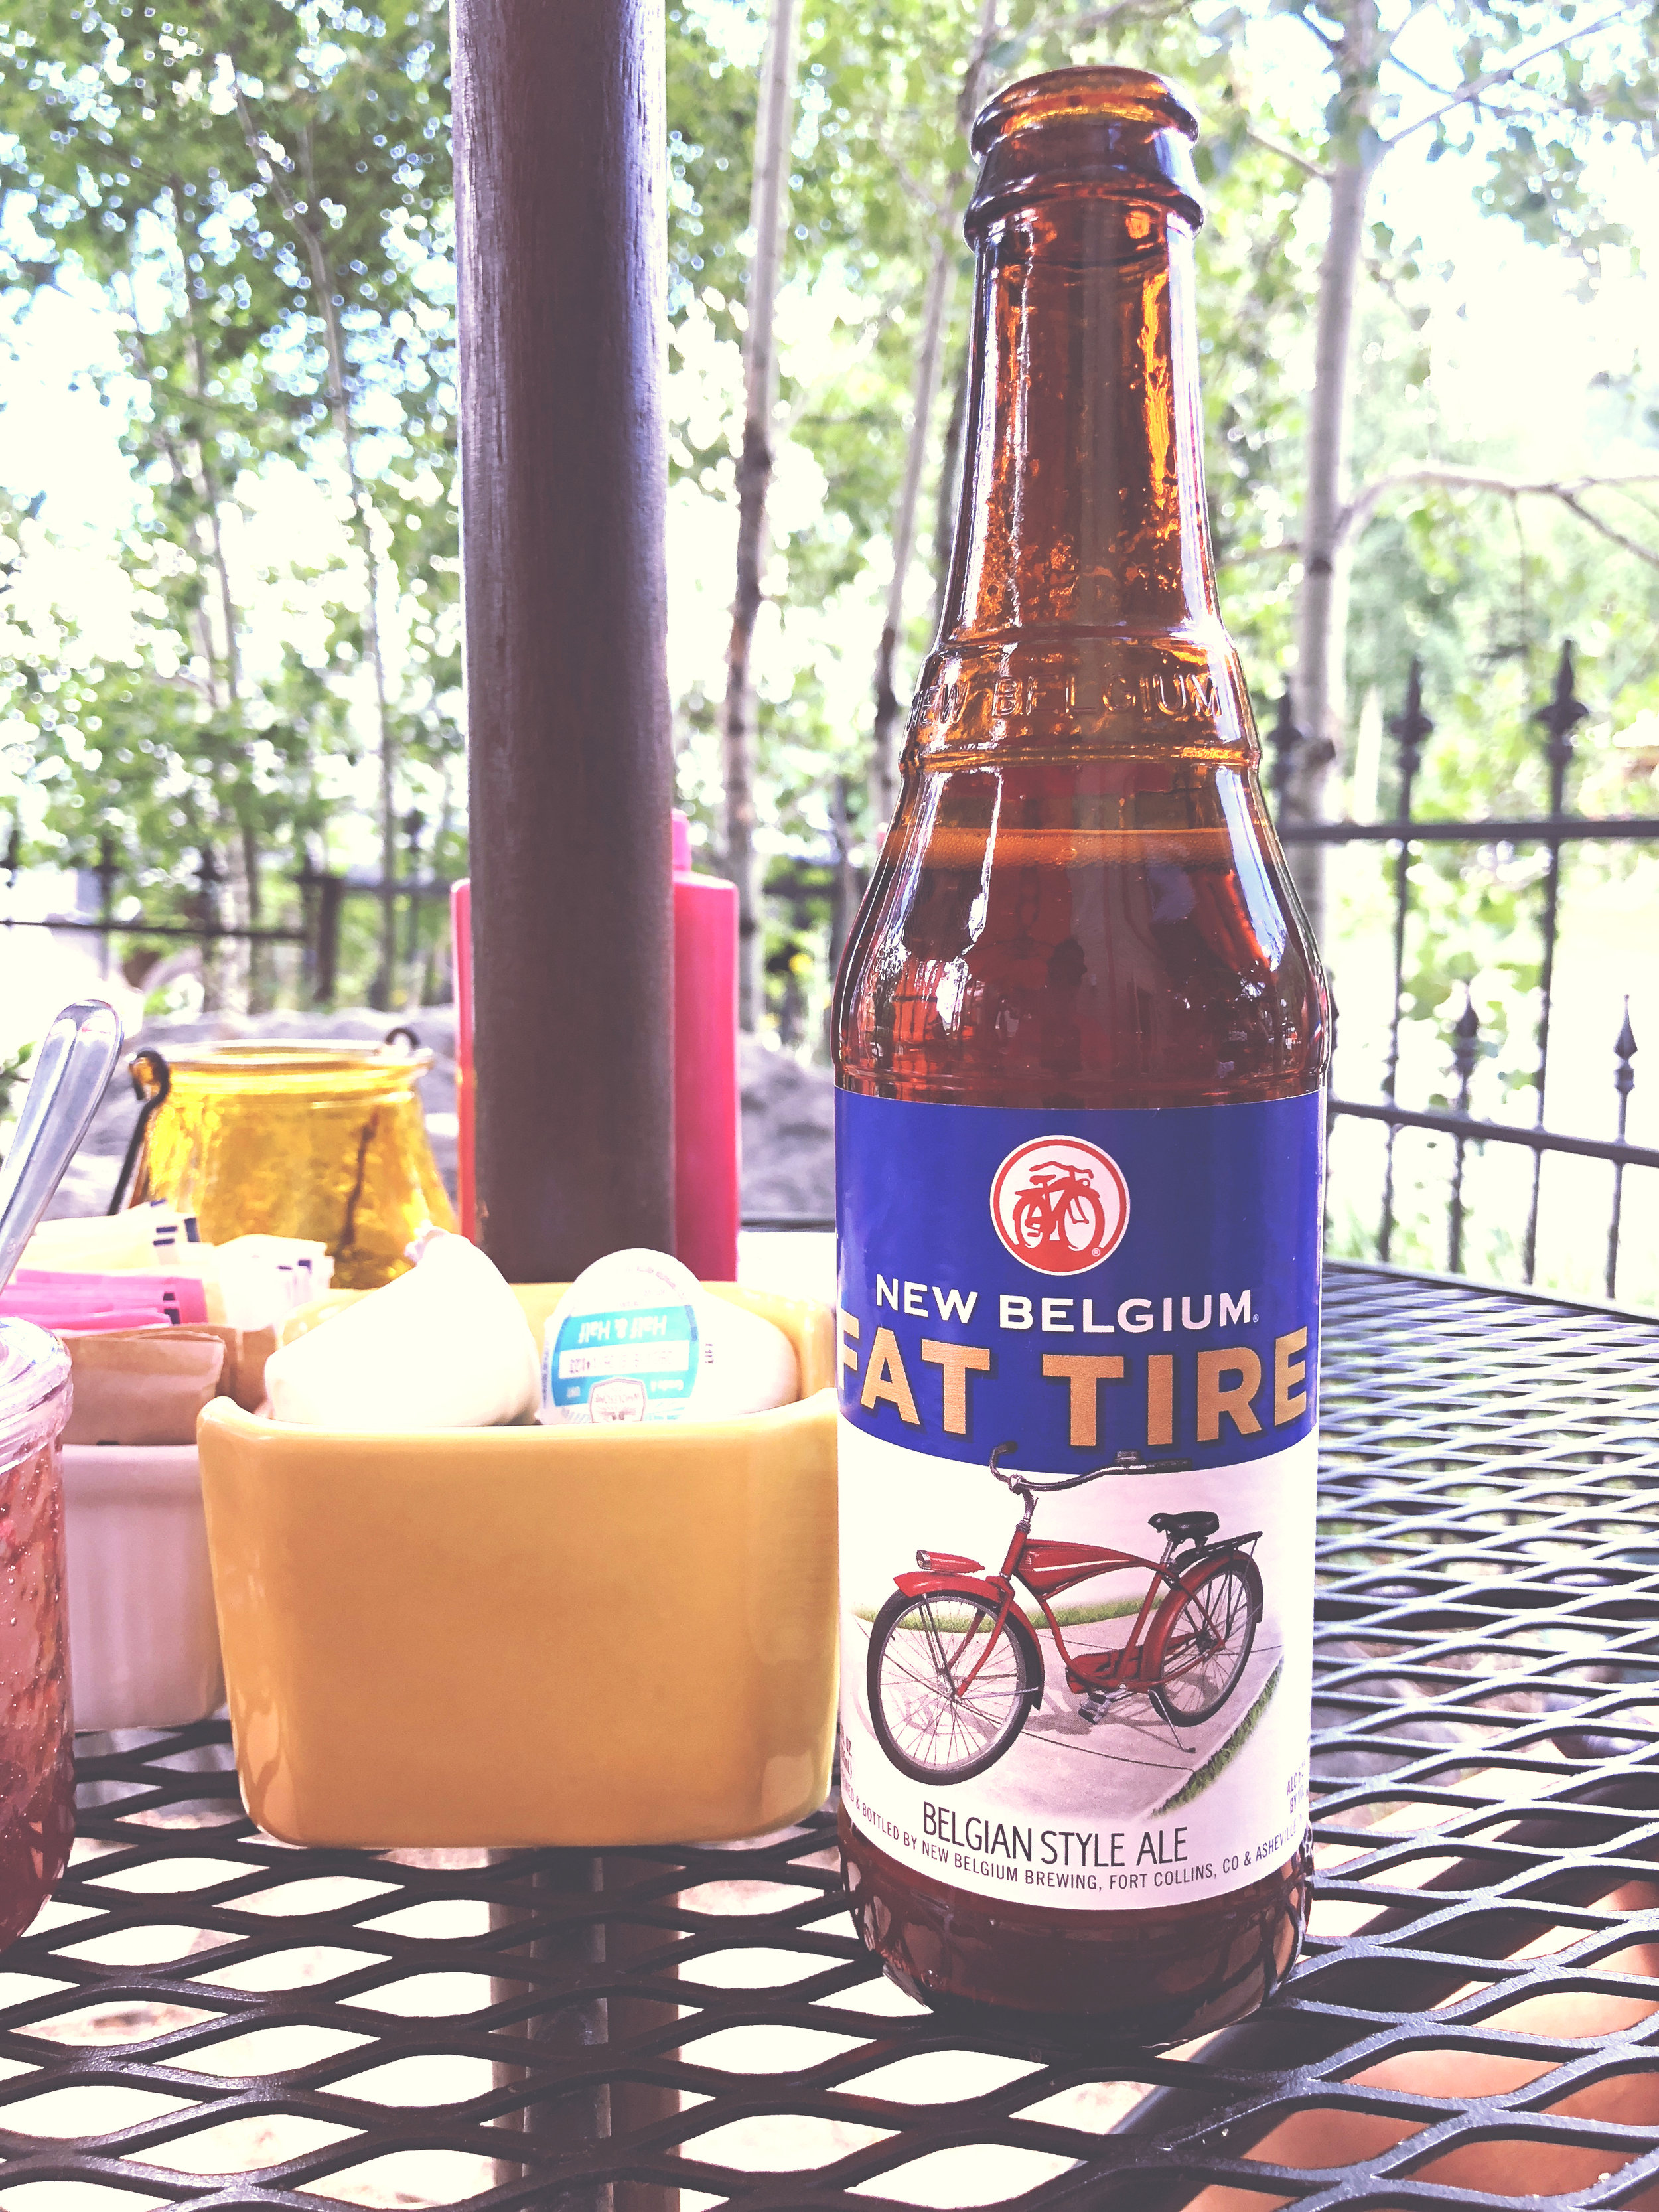 9.08PM - Fat Tire beer after a long, long drive. God bless us, everyone.